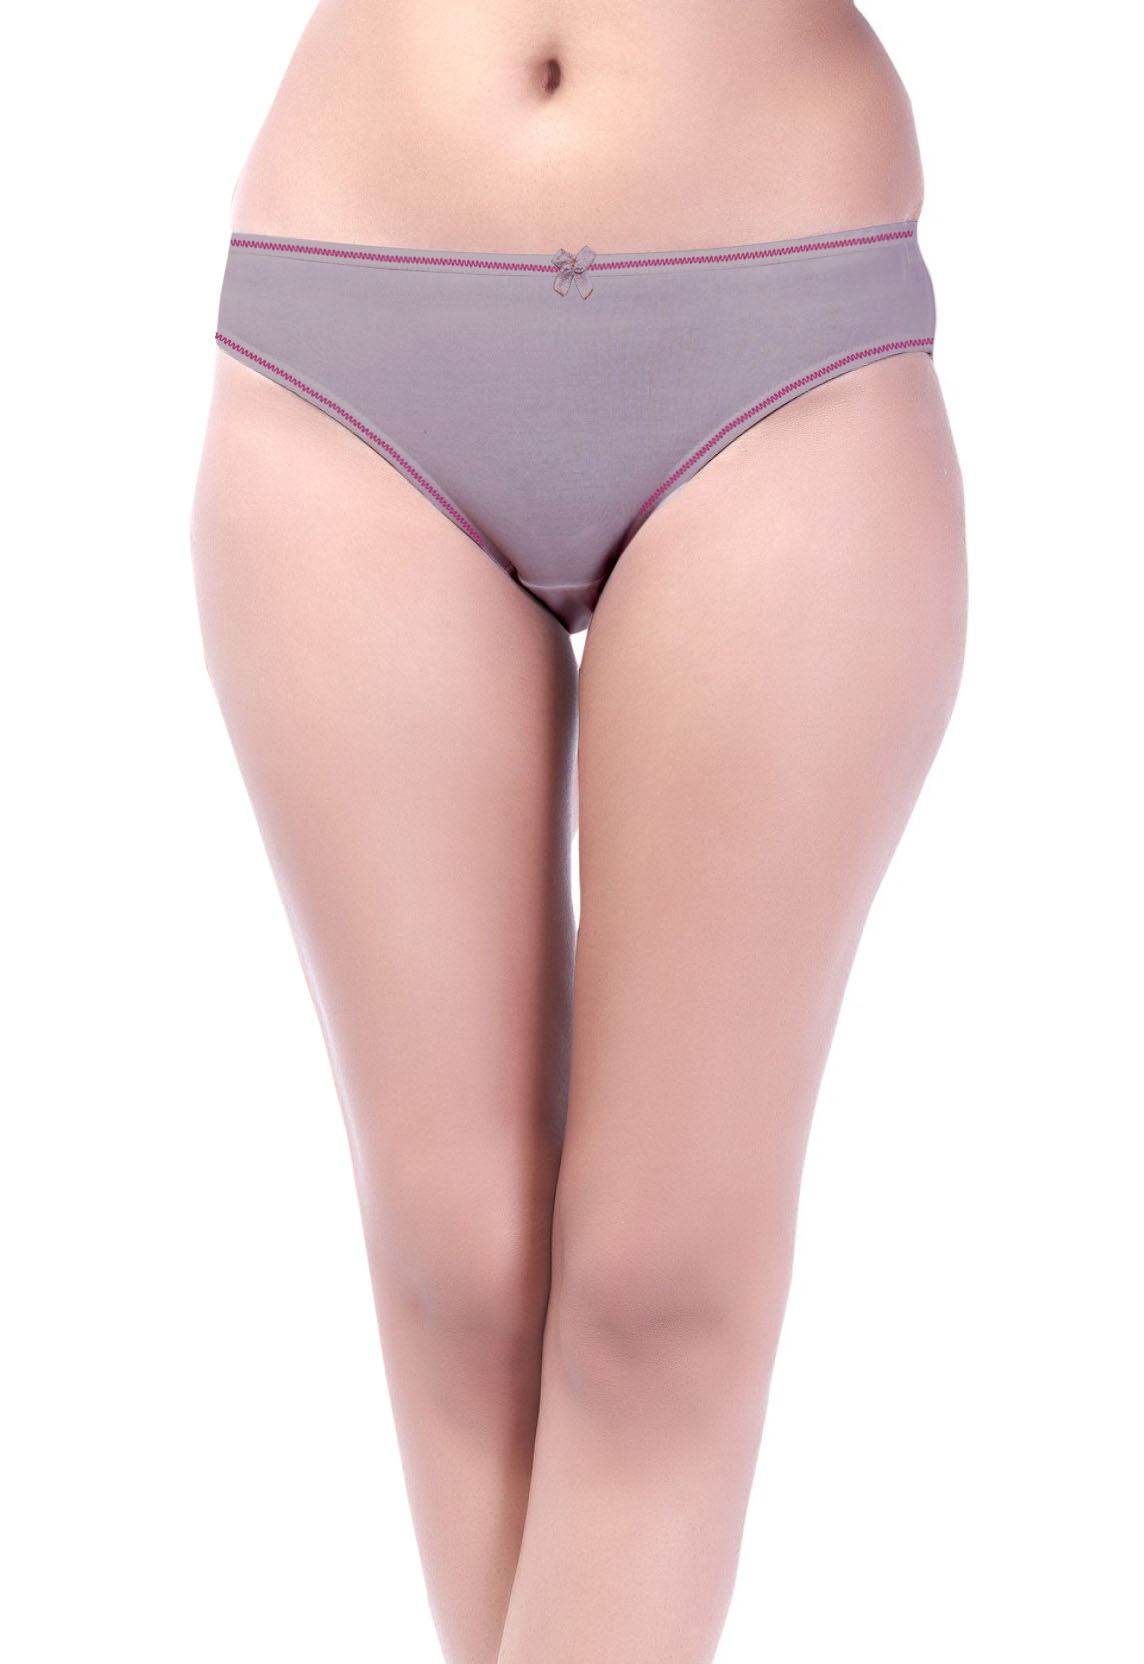 Wmn Panty KS040-P-PM-PR LIGHT BROWN